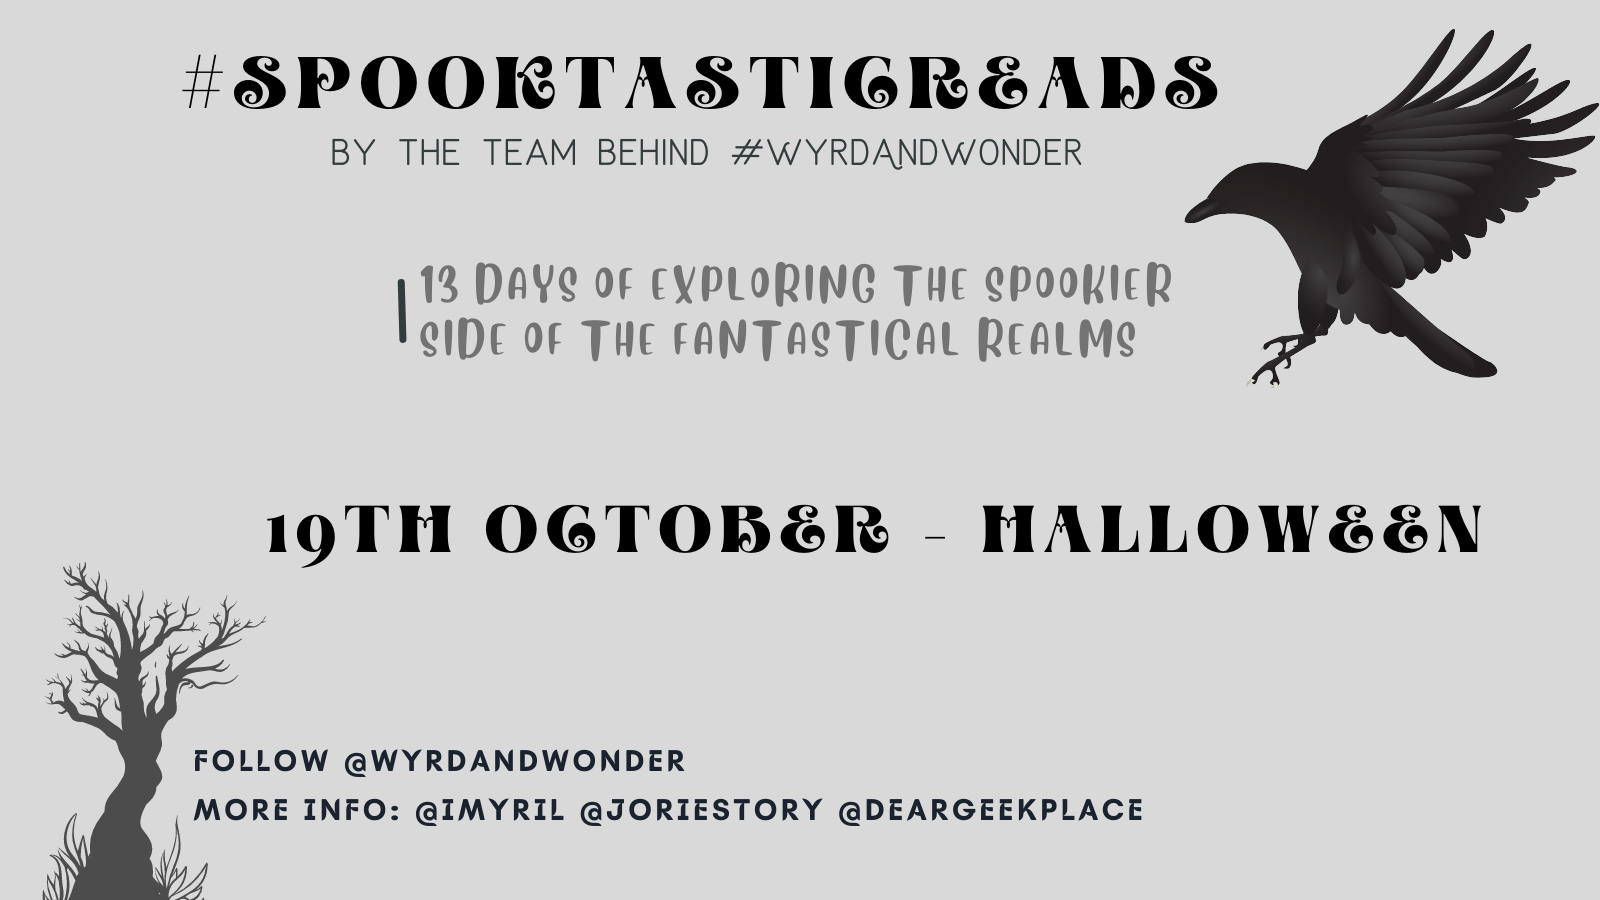 #SpooktasticReads 2021 banner created by Jorie in Canva.